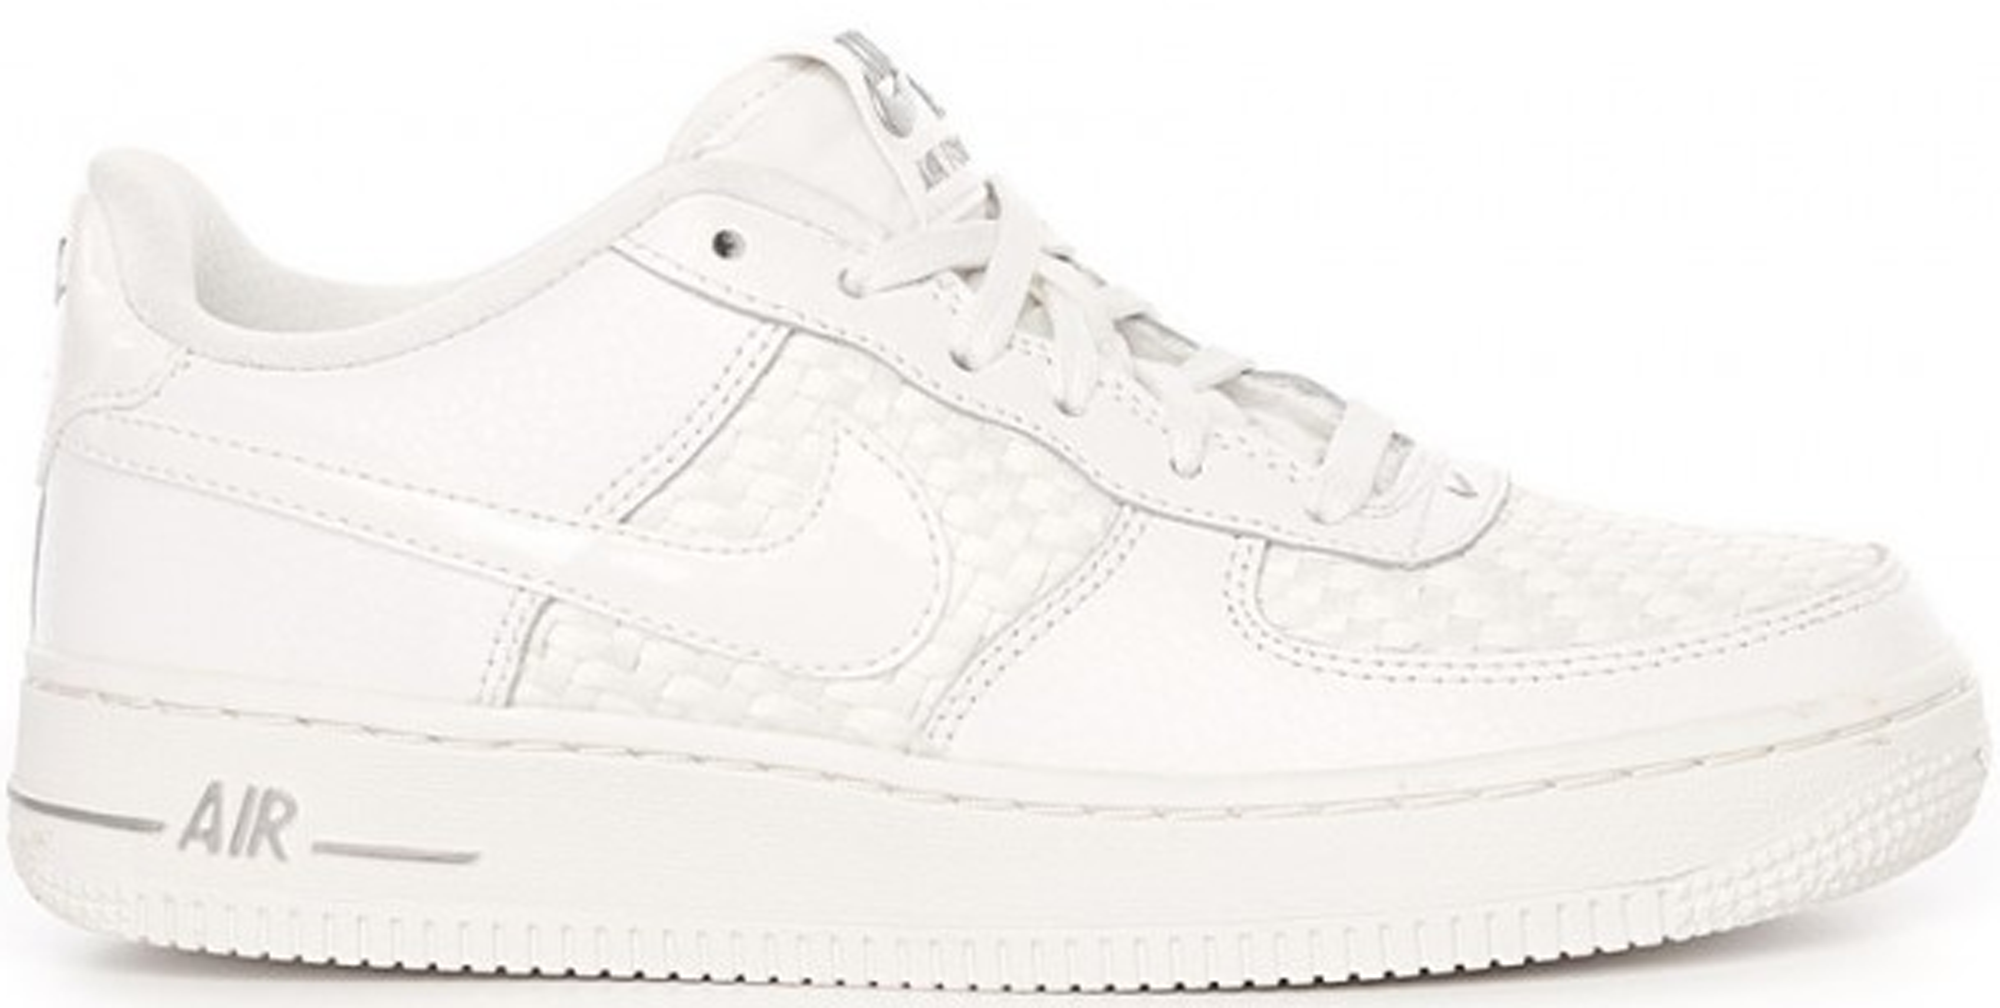 Nike Air Force 1 Low Triple White Leather Woven (GS